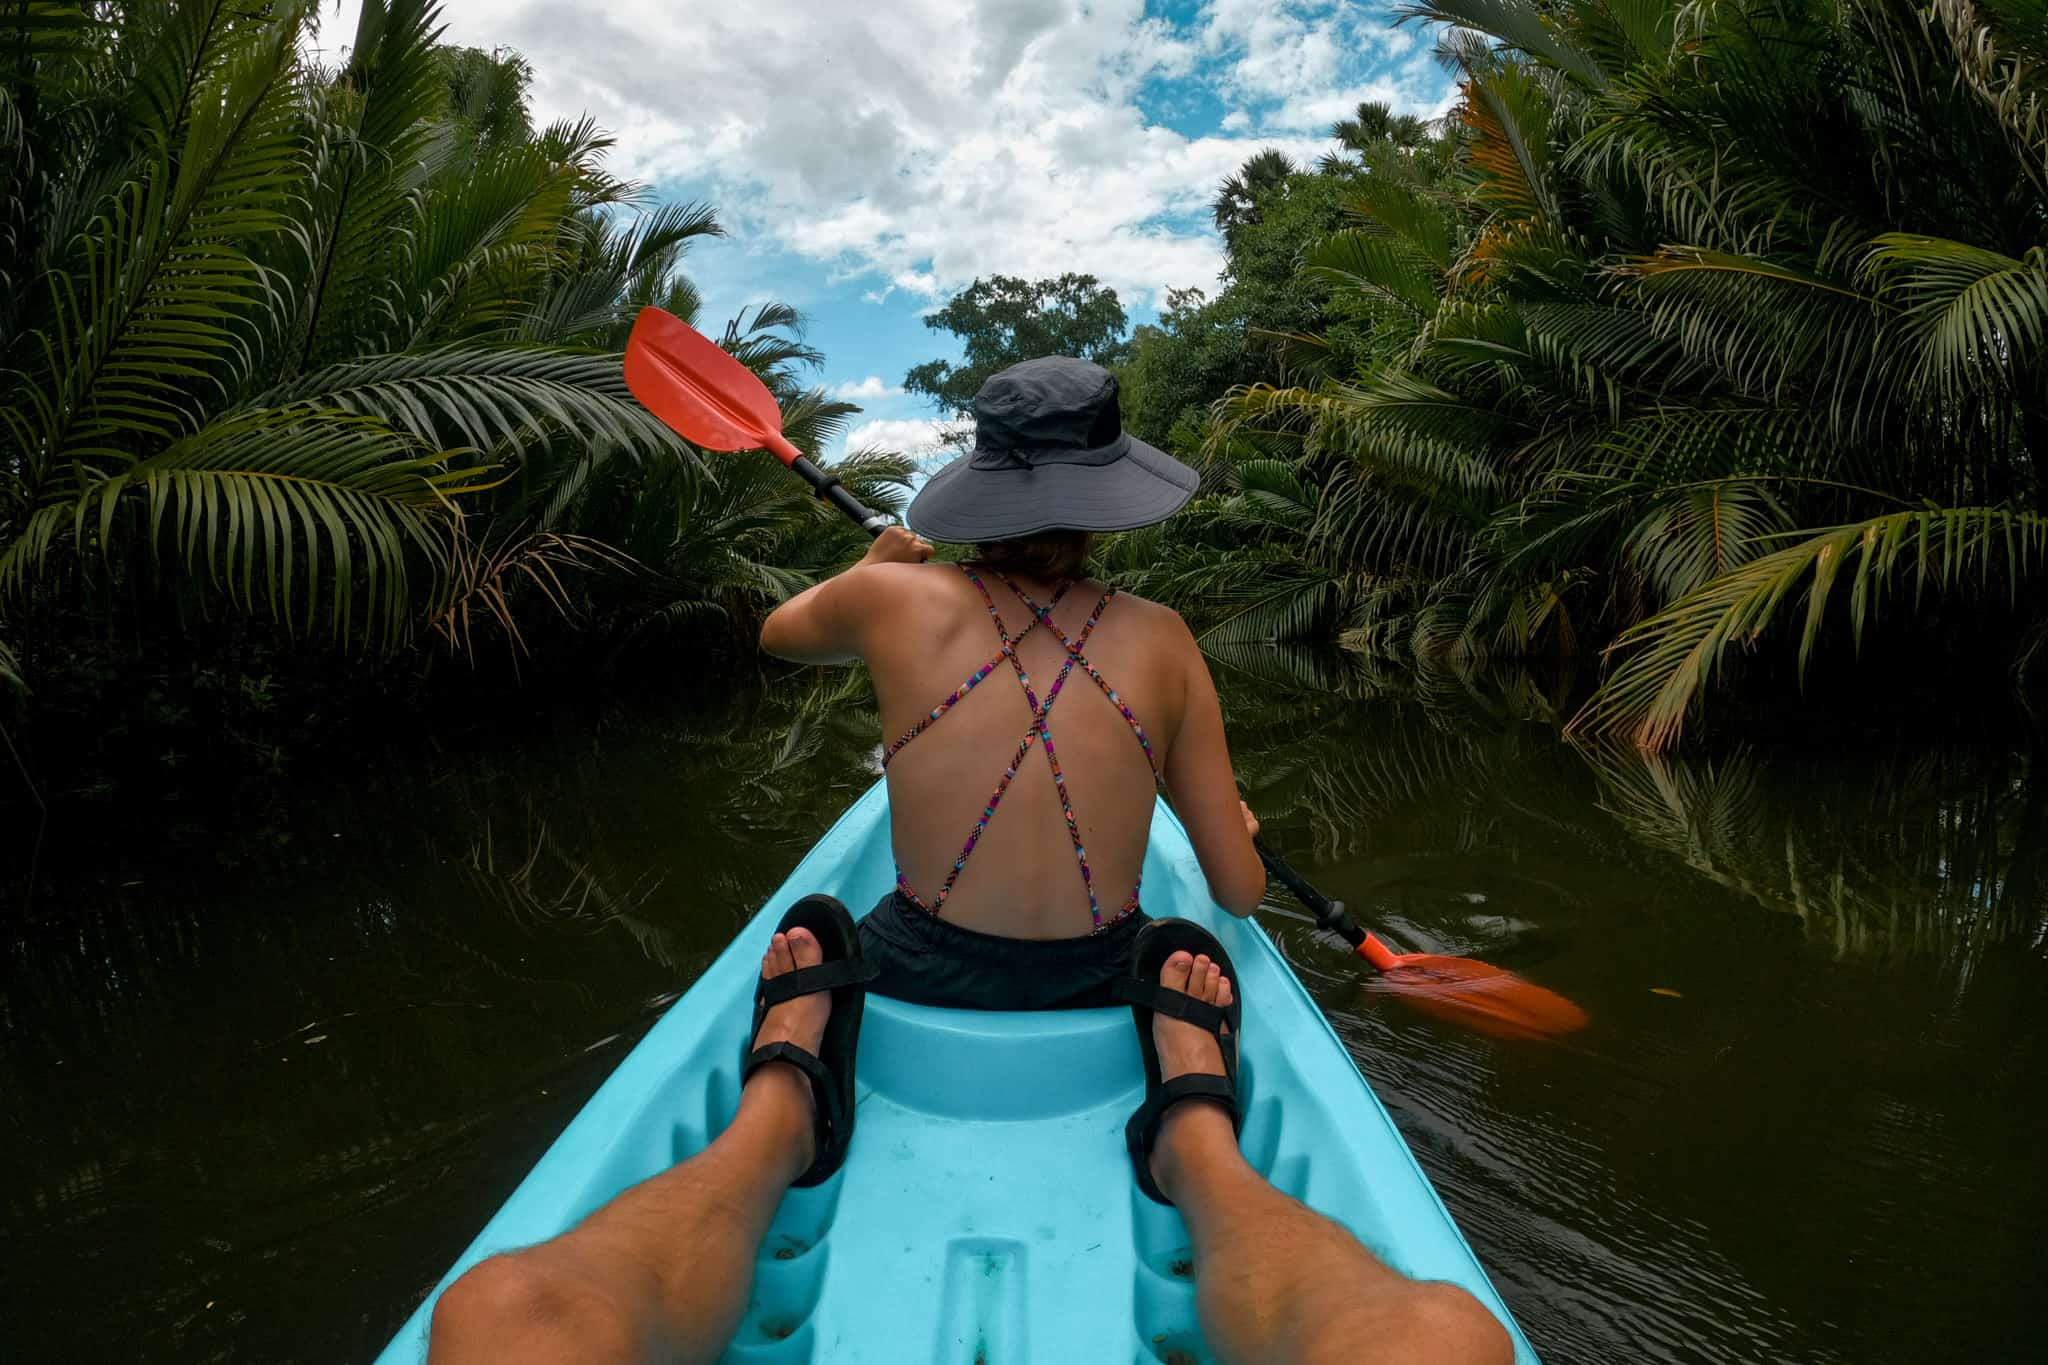 Alicia Kayaking on the Green Cathedral